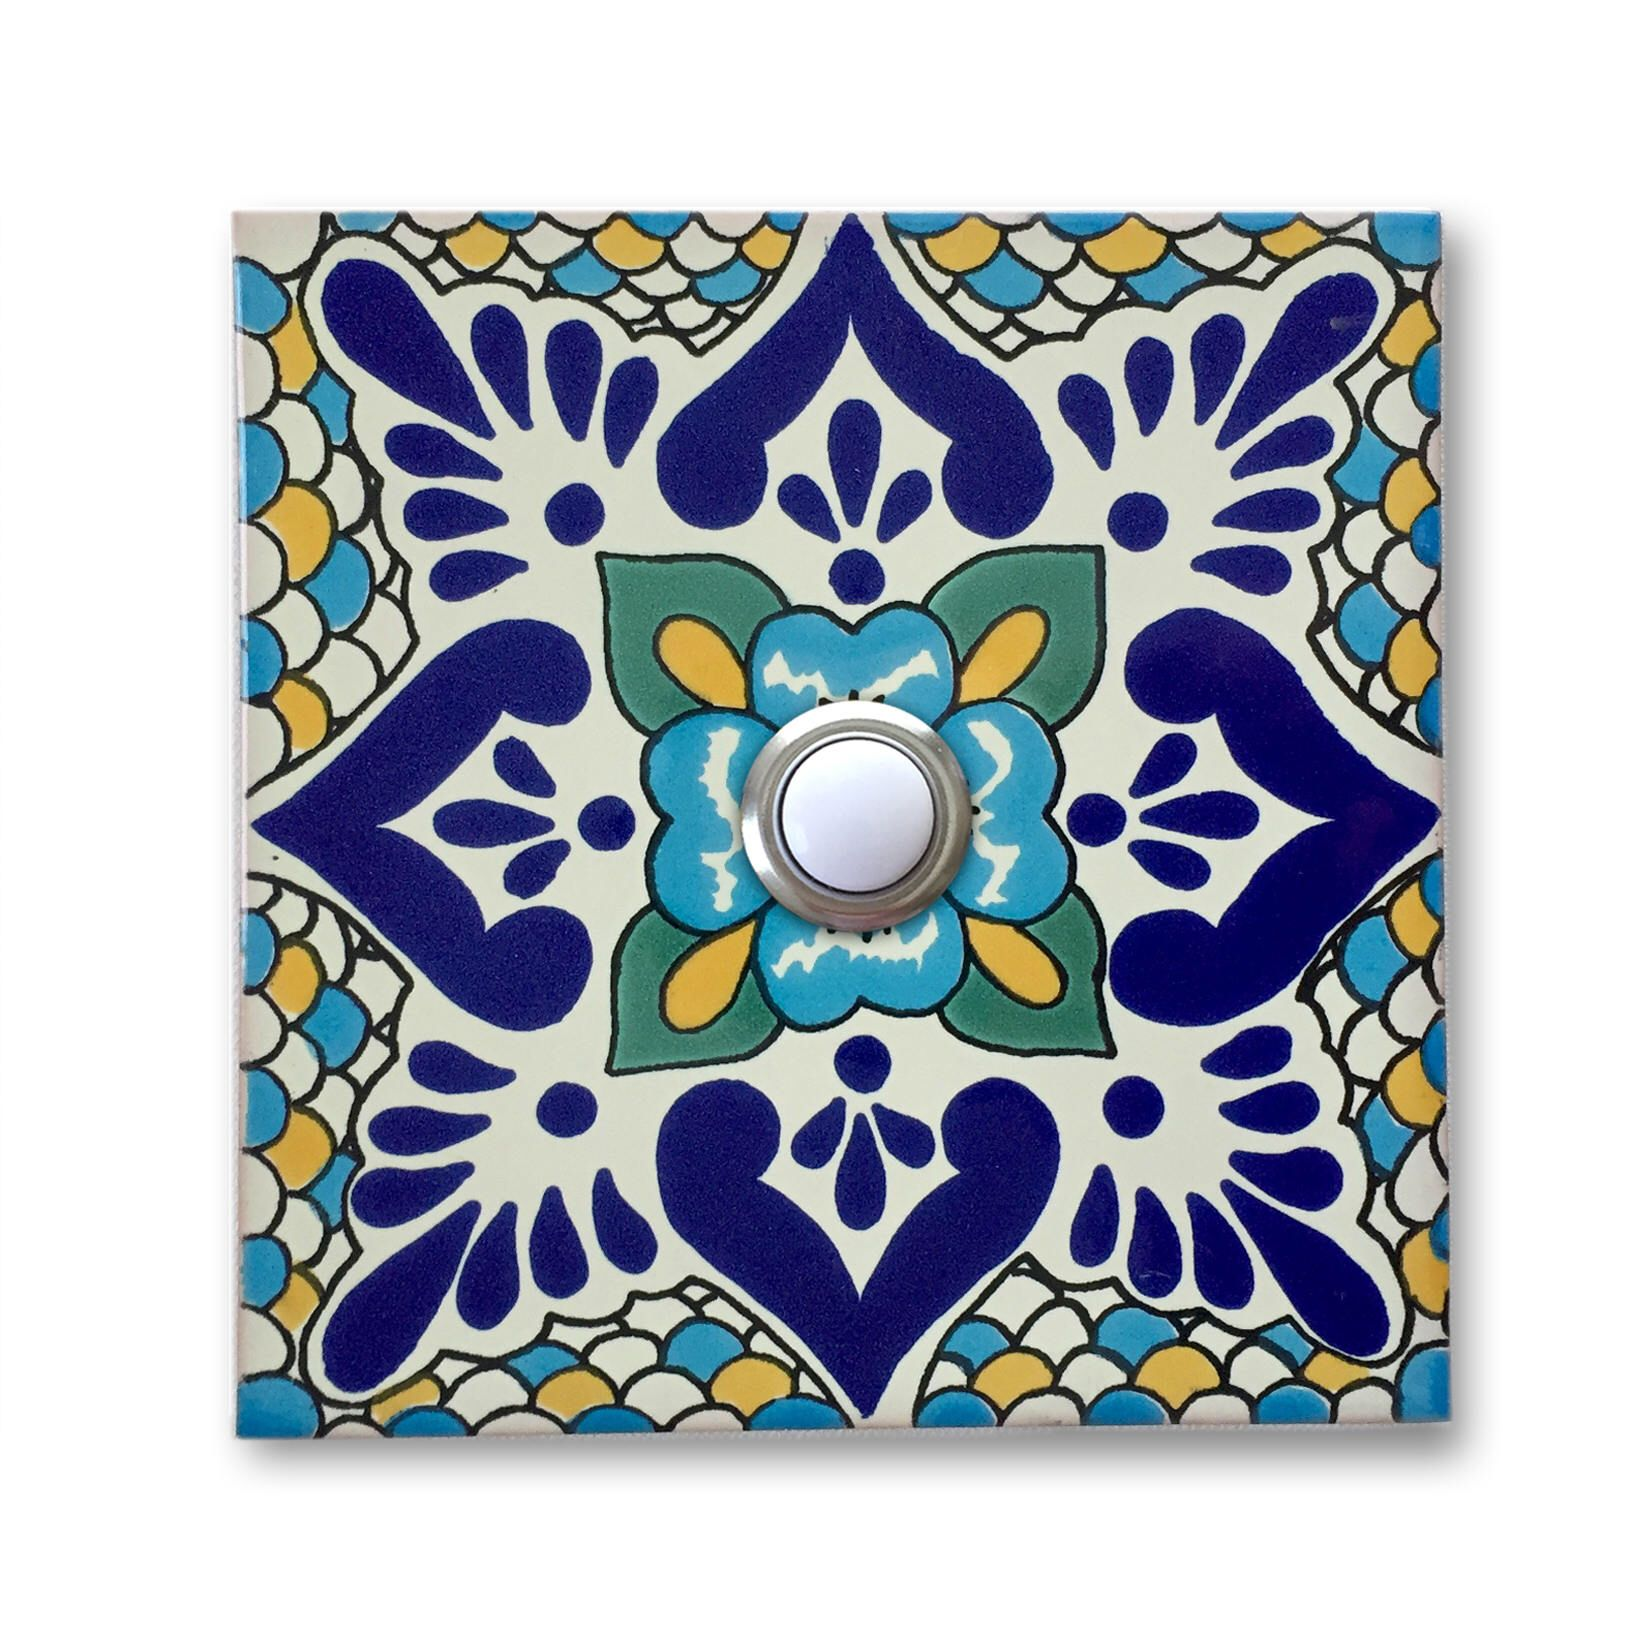 Doorbell 4x4 handcrafted ceramic tile cover with lighted button doorbell 4x4 handcrafted ceramic tile cover with lighted button 4 x 4 by chasealexanderdesign dailygadgetfo Images